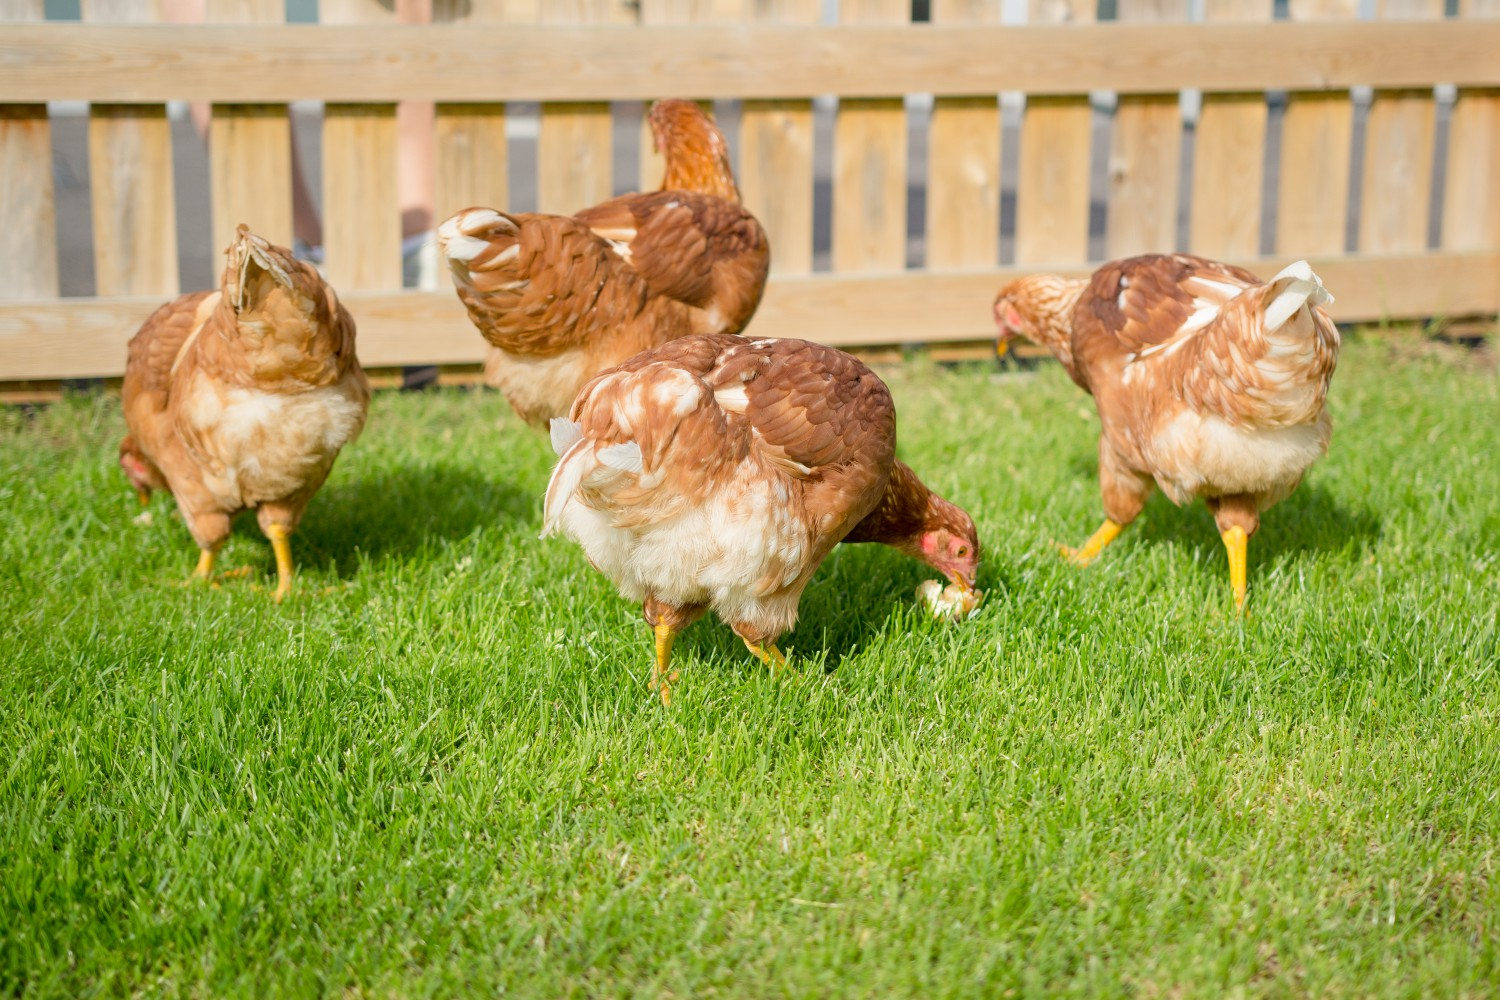 Chickens eating on the grass